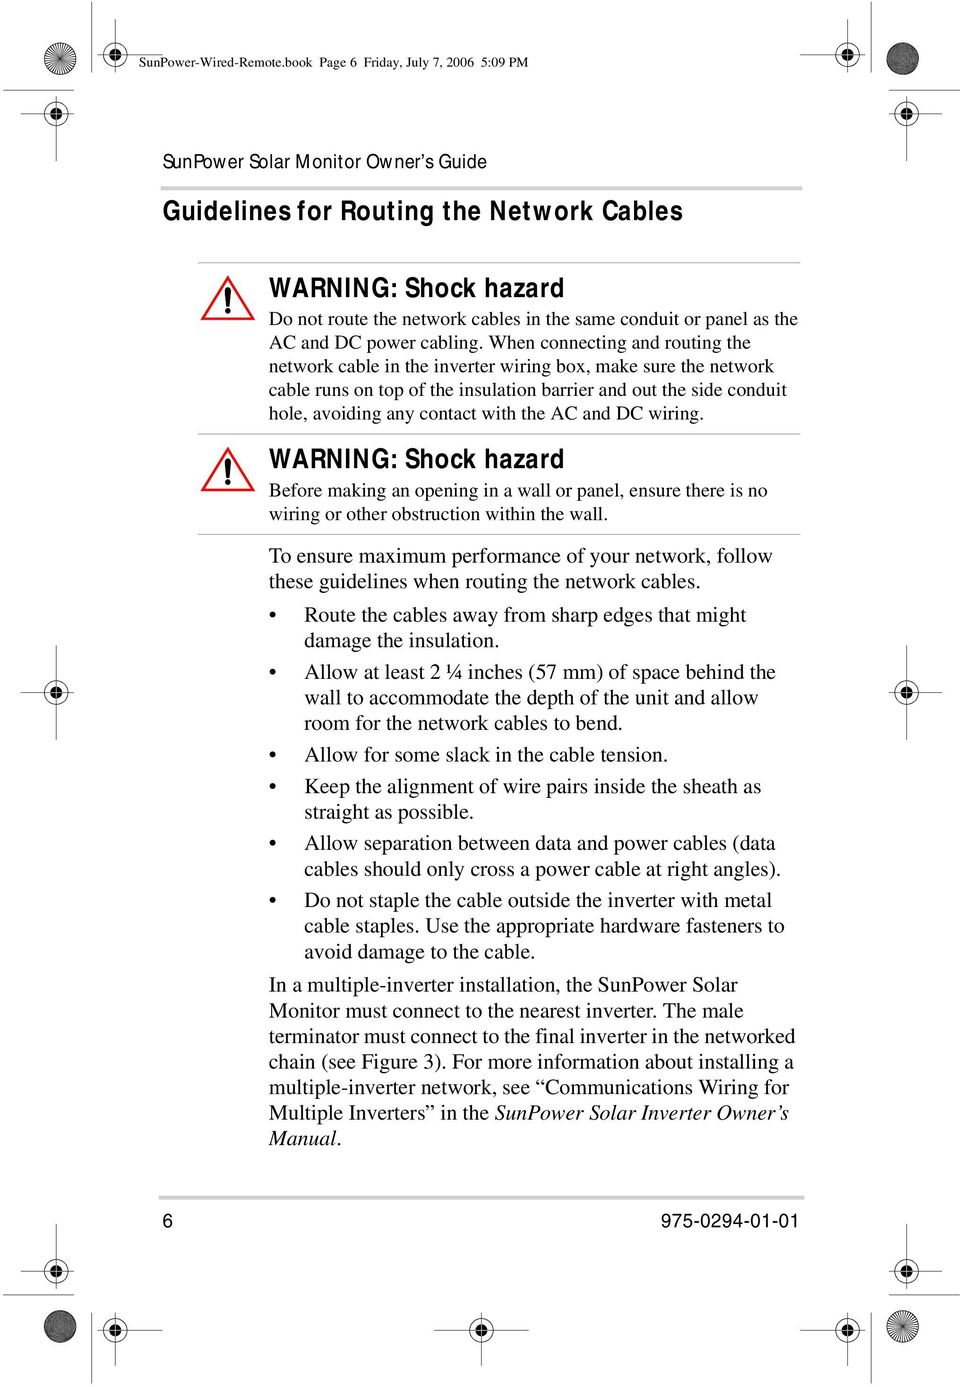 Owner S Guide Sunpower Sprx Solar Monitor Manual Type Pdf